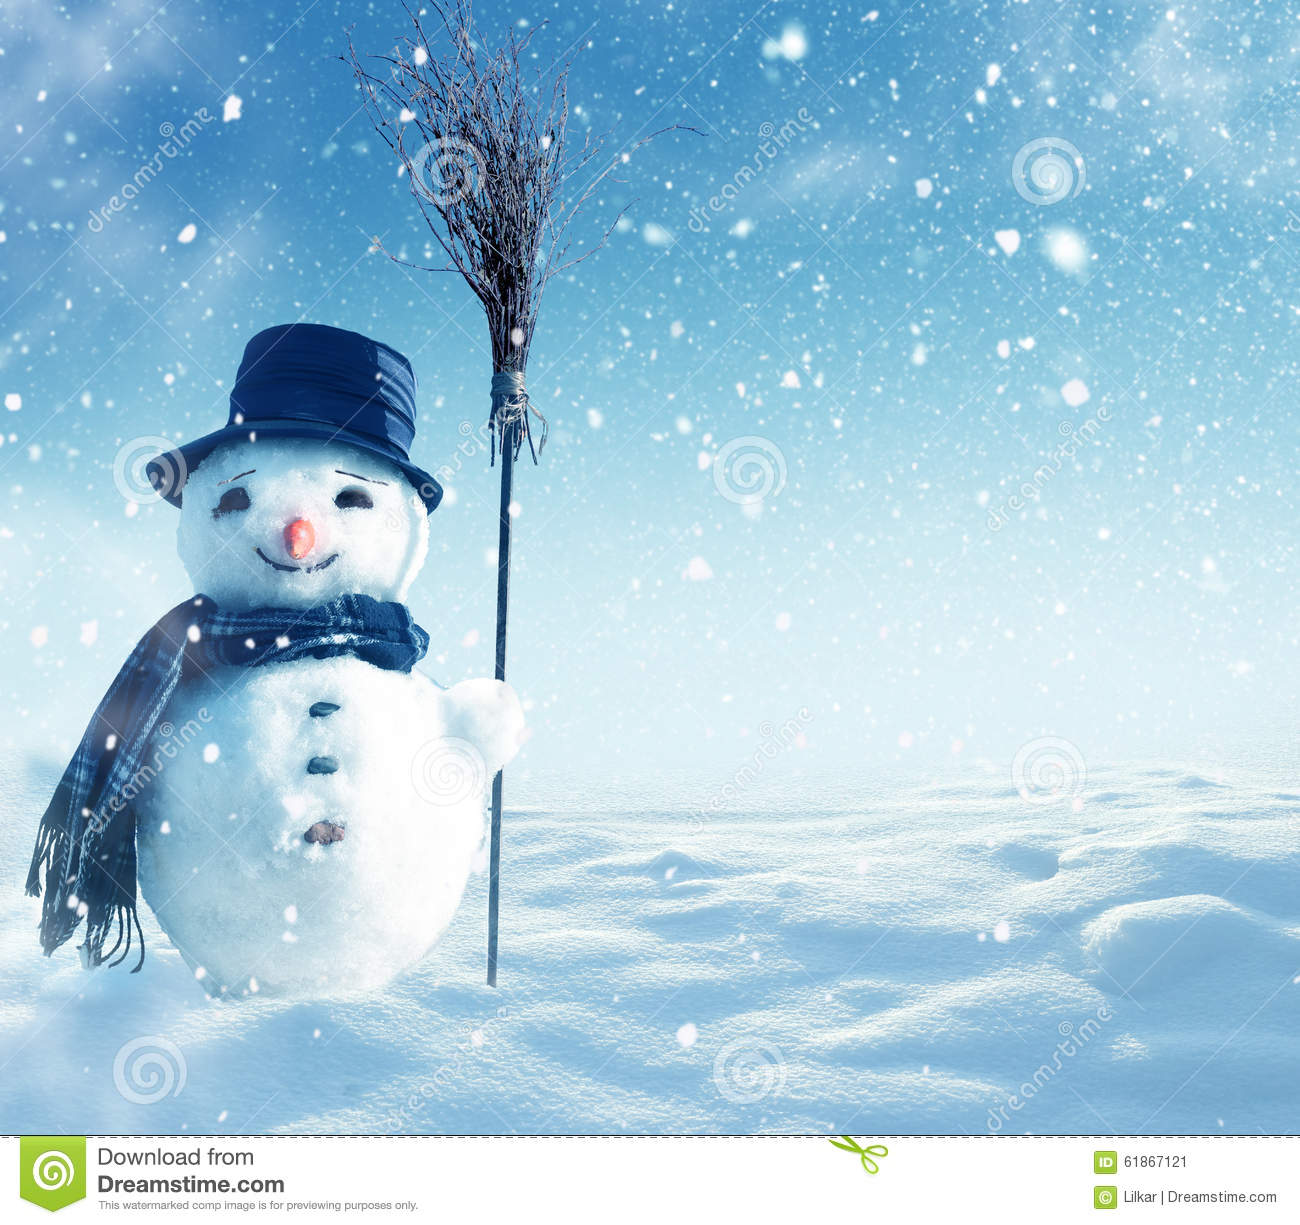 Snowman standing in winter christmas landscape